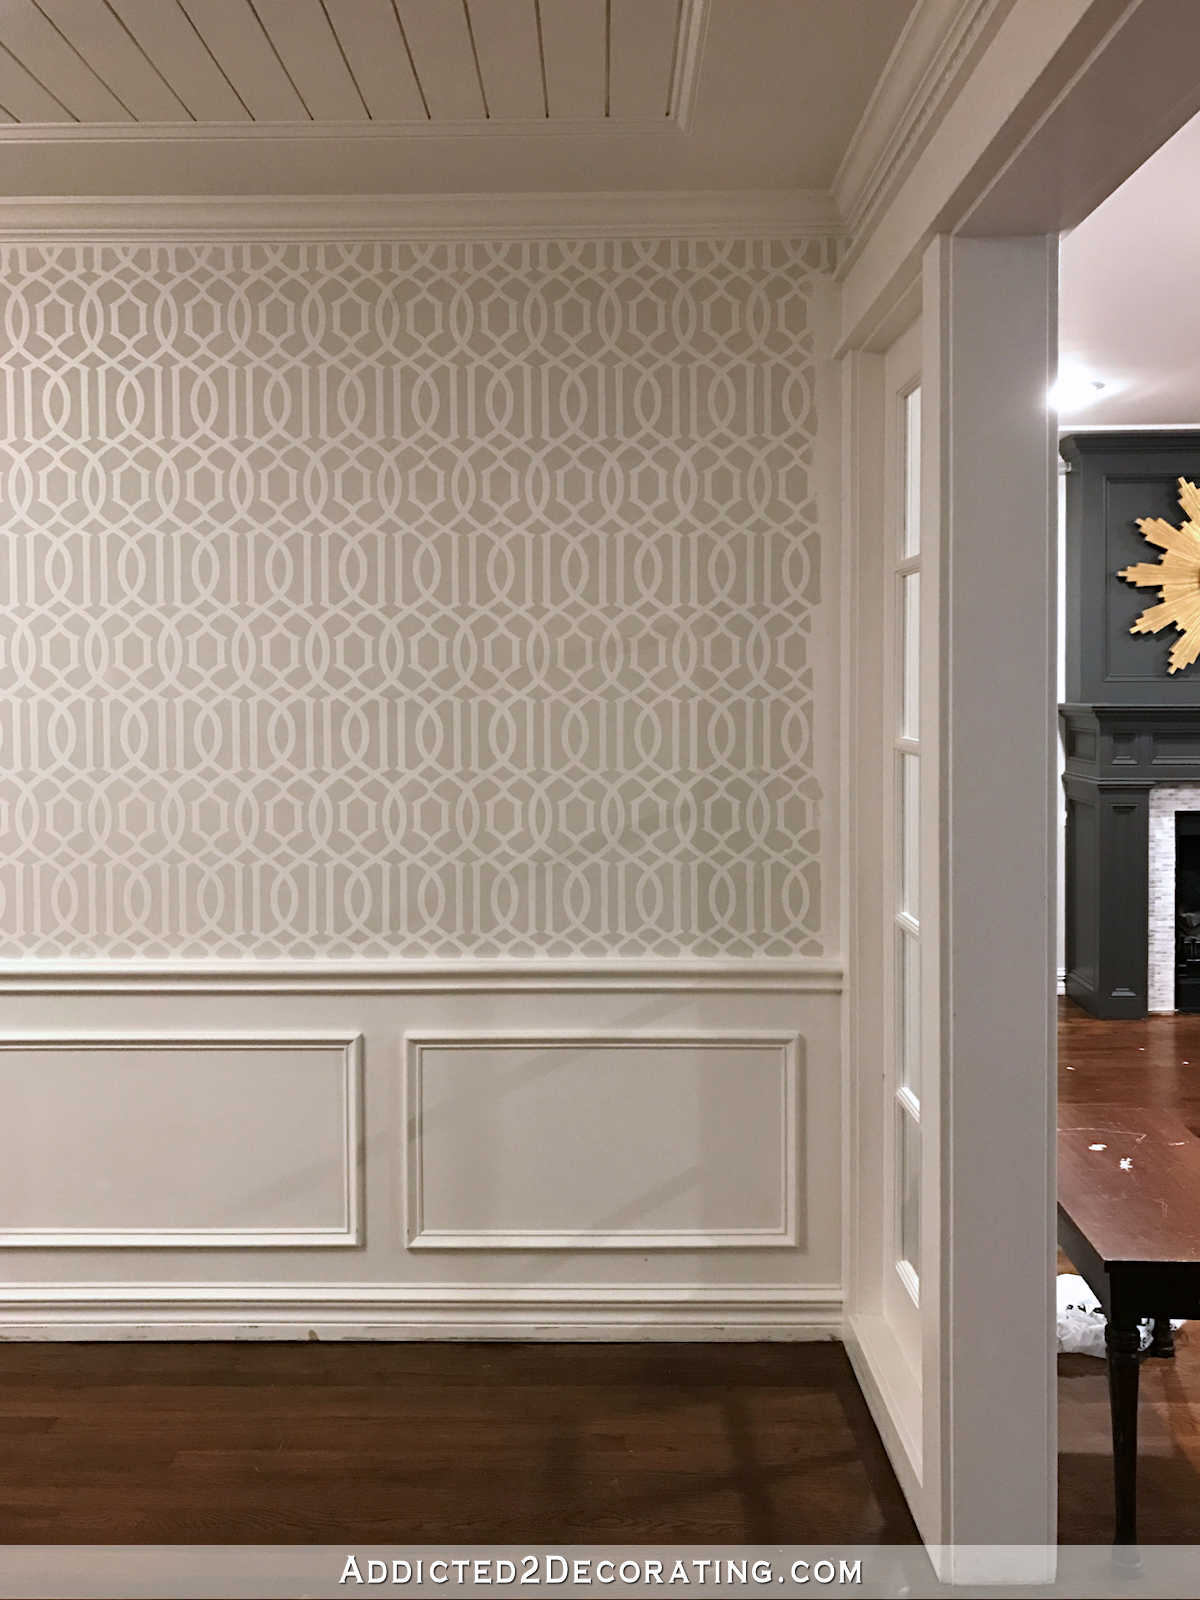 stenciled trellis design on walls in music room - 5